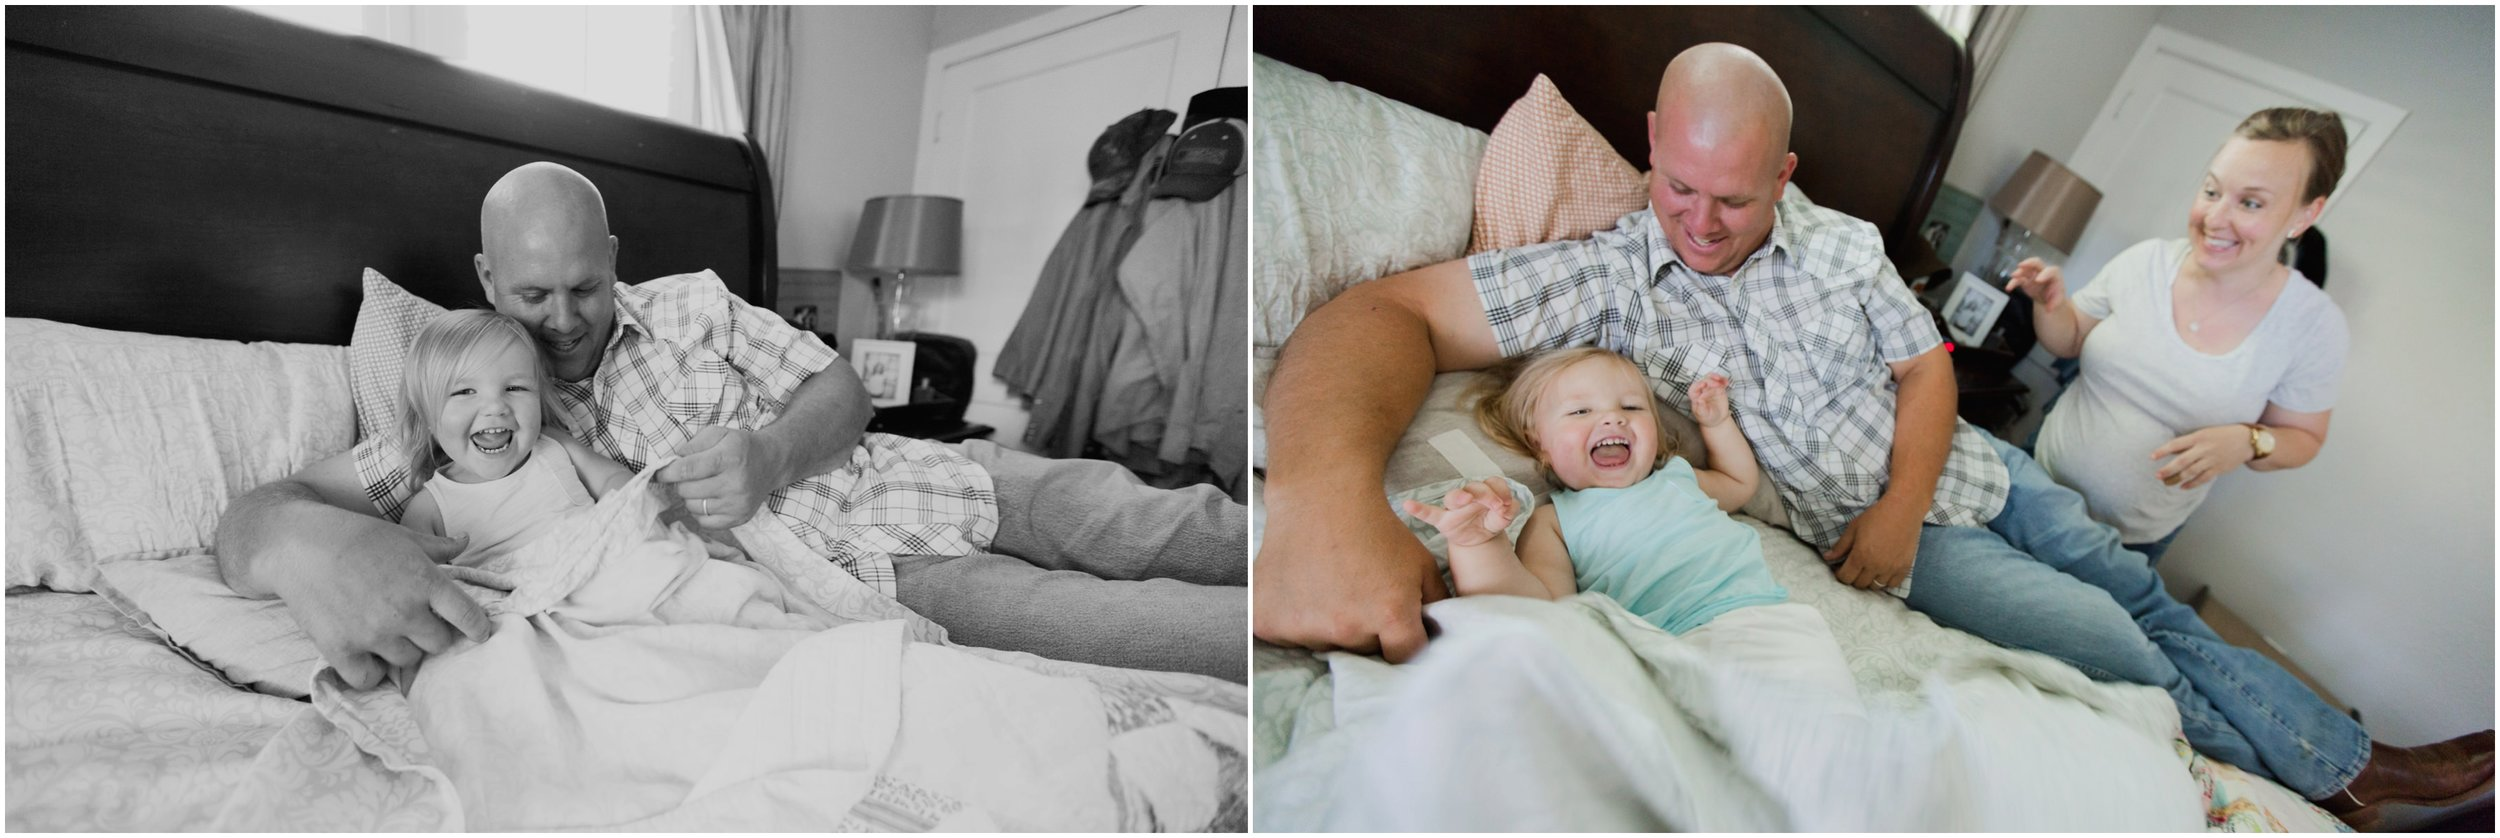 oklahoma_lifestyle_photographer_in_home_maternity